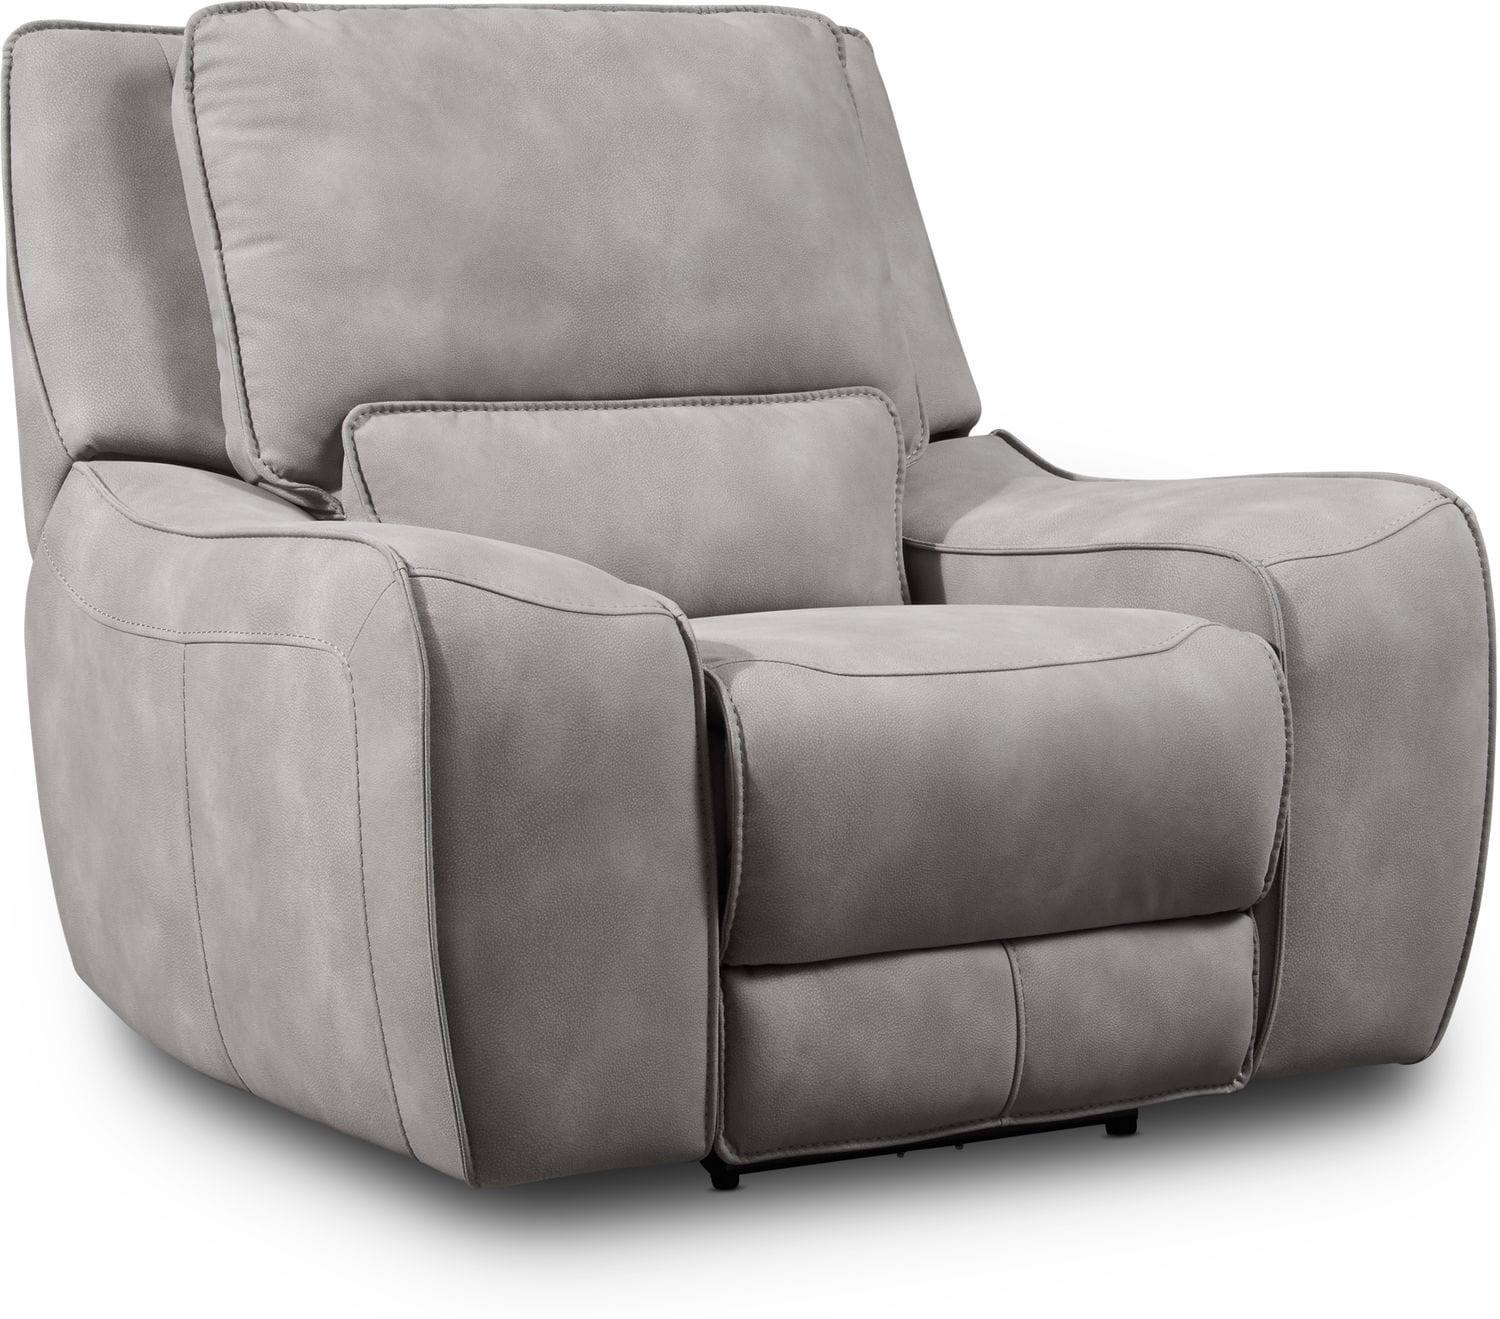 Living Room Furniture - Holden Dual-Power Recliner - Stone